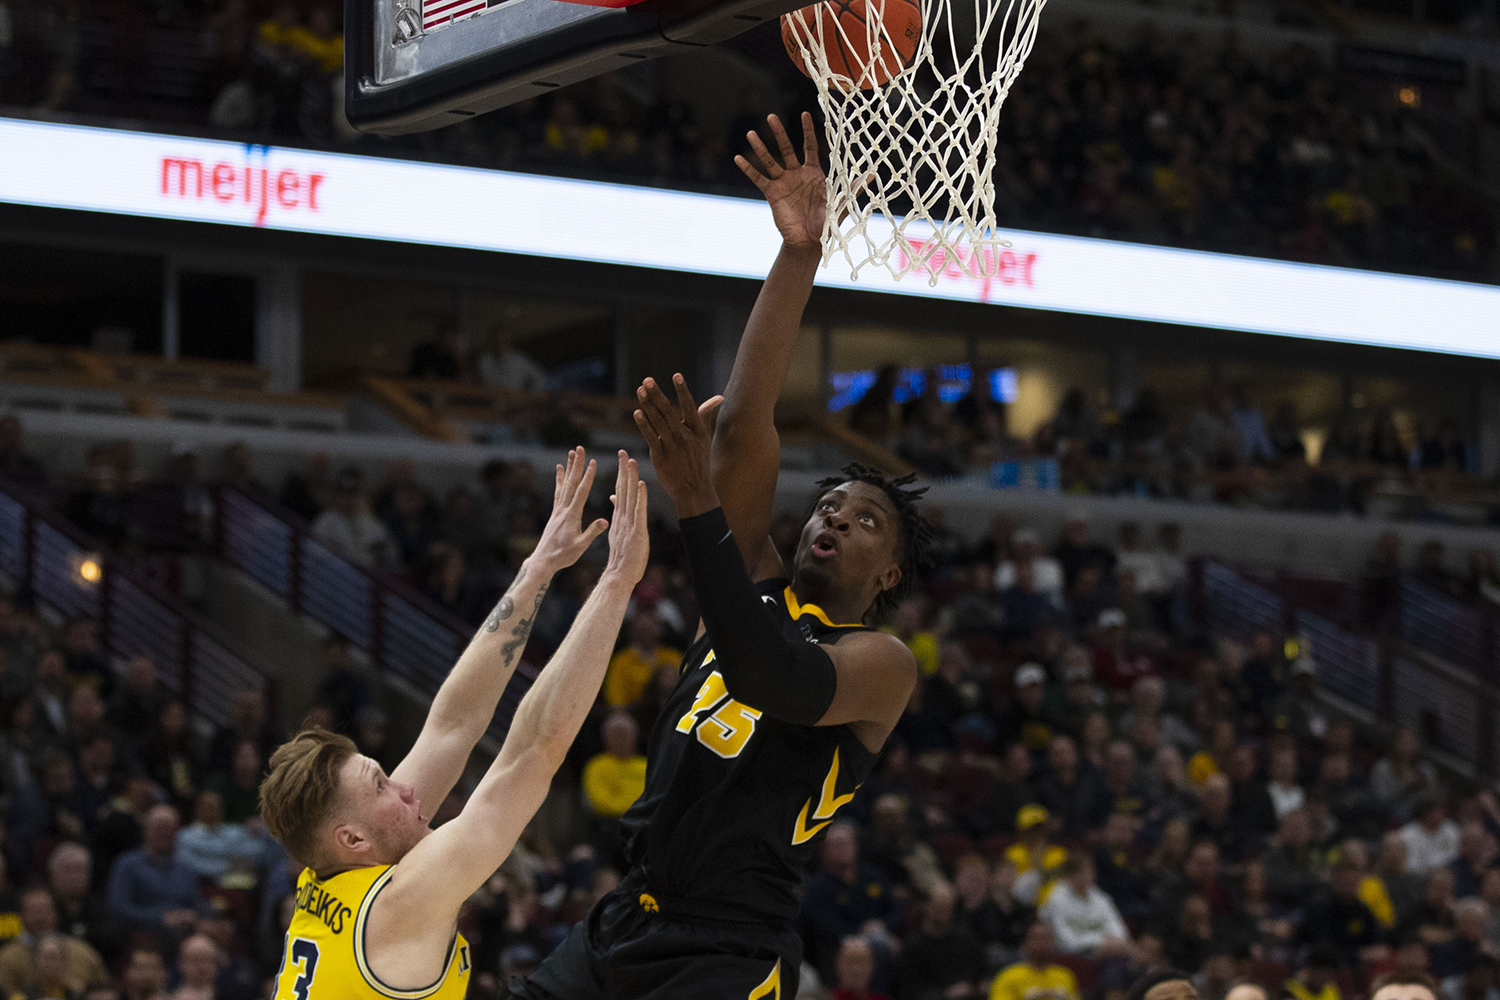 Iowa+forward+Tyler+Cook+attempts+a+shot+during+the+Iowa%2FMichigan+Big+Ten+Tournament+men%27s+basketball+game+in+the+United+Center+in+Chicago+on+Friday%2C+March+15%2C+2019.+The+Wolverines+defeated+the+Hawkeyes%2C+74-53.+